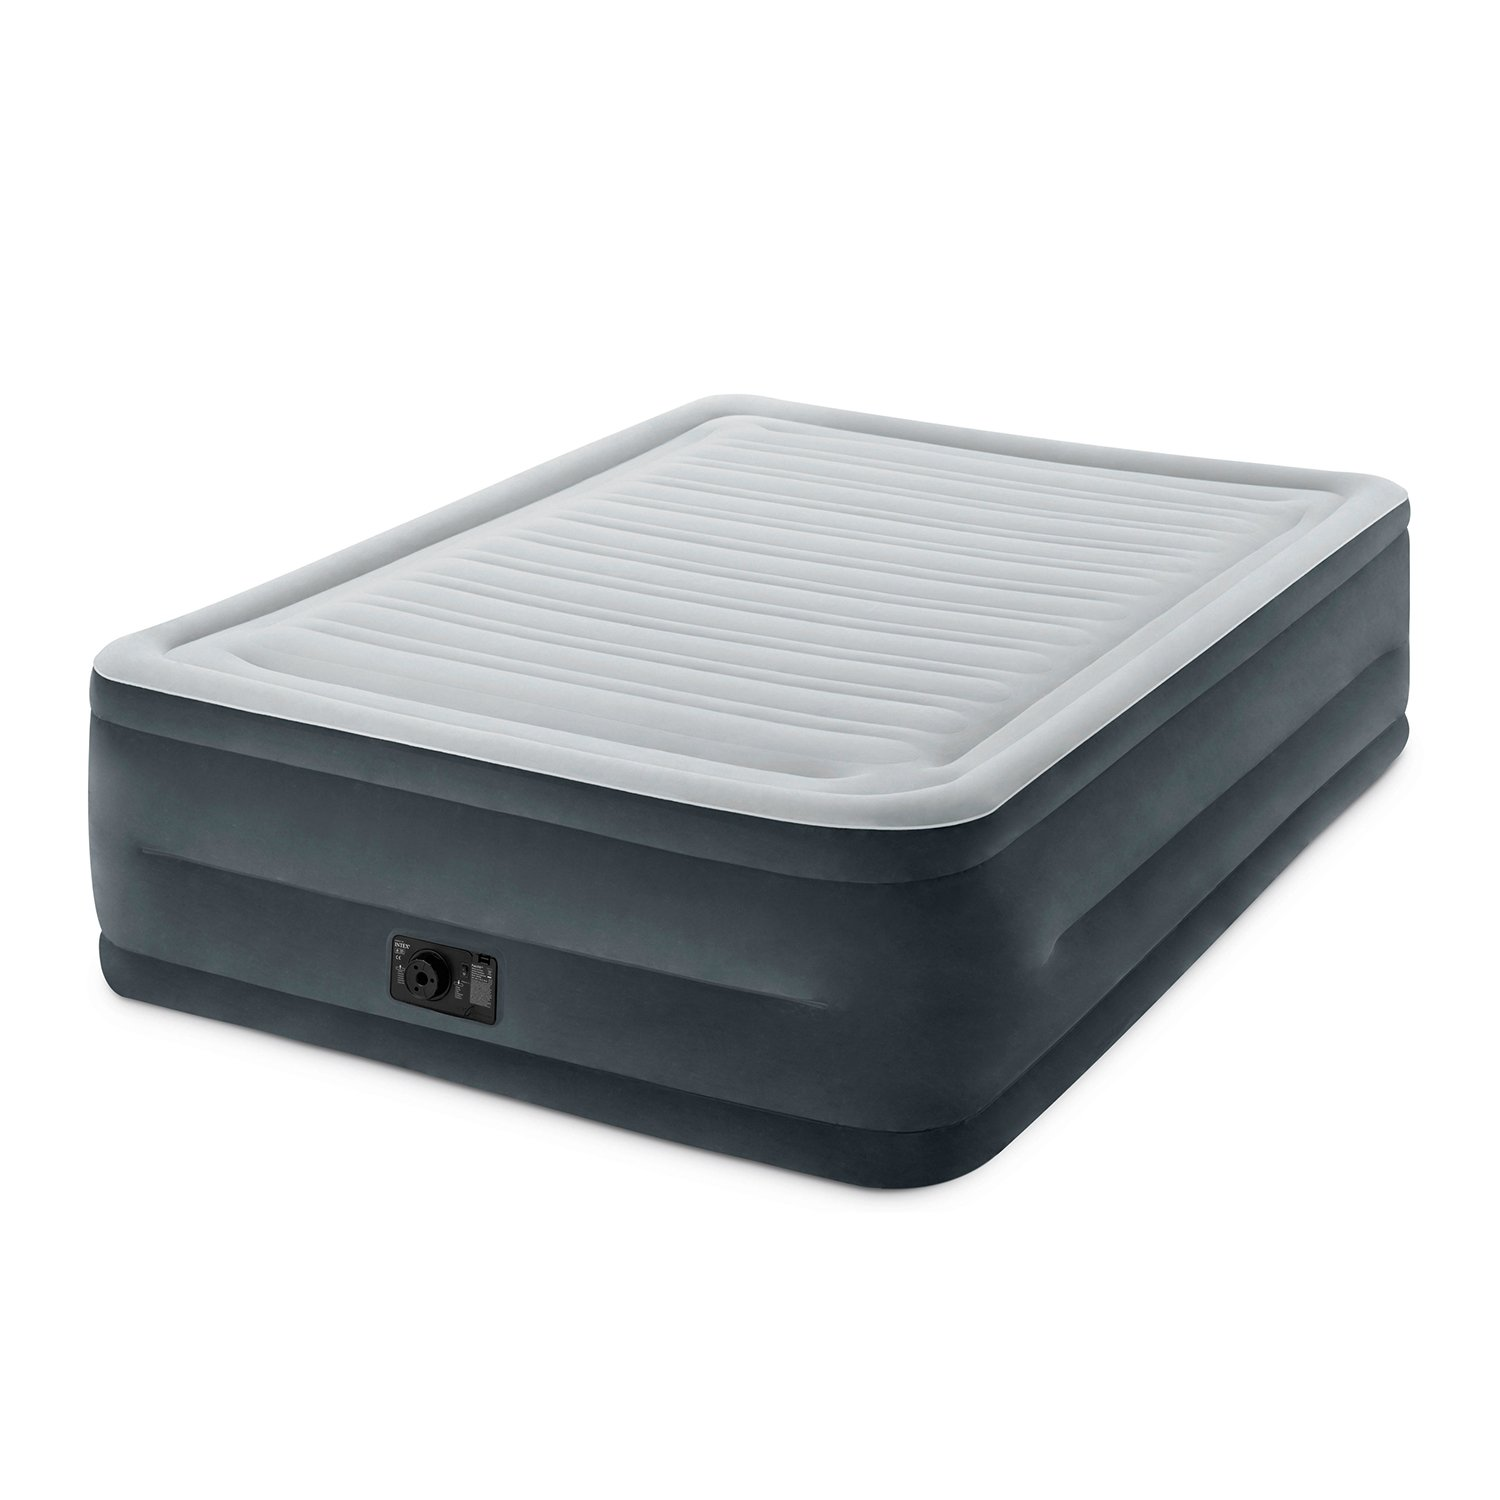 Serta Raised Queen Air Mattress Black Friday 2019  Deals